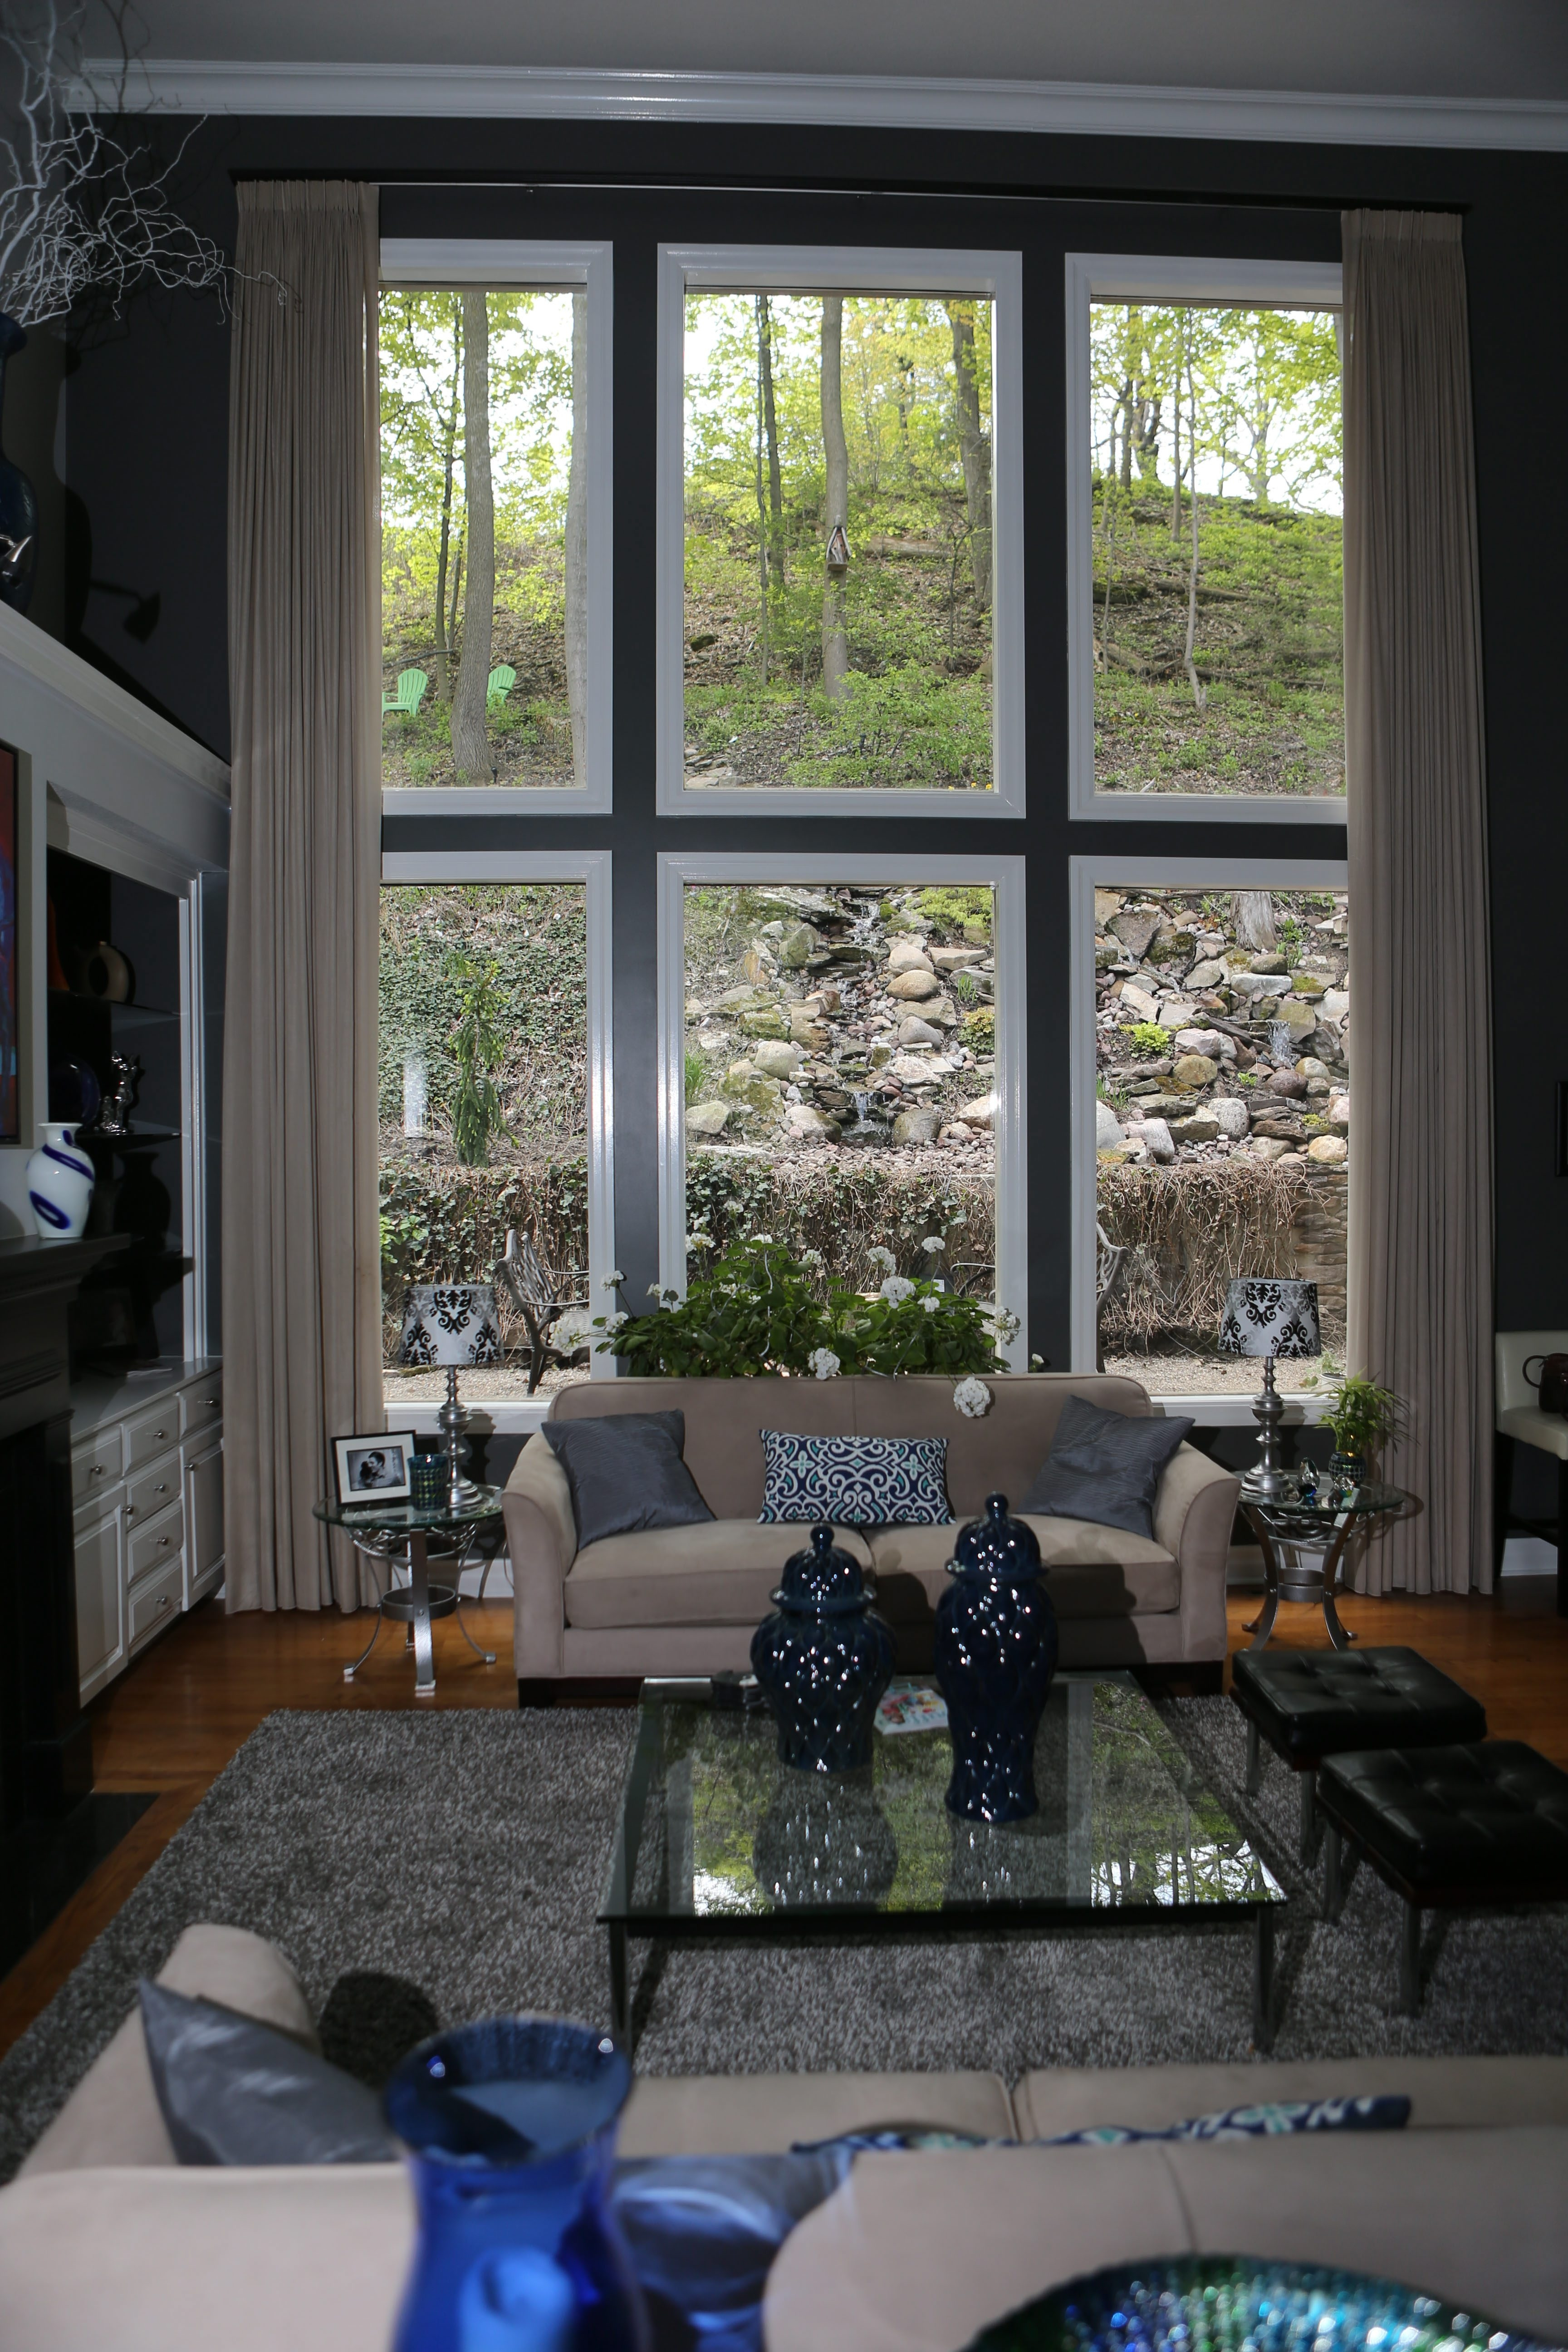 This is the view out of the living room windows of Greg and Judy Gima's home nestled at the foot of the Niagara Escarpment in Lewiston.